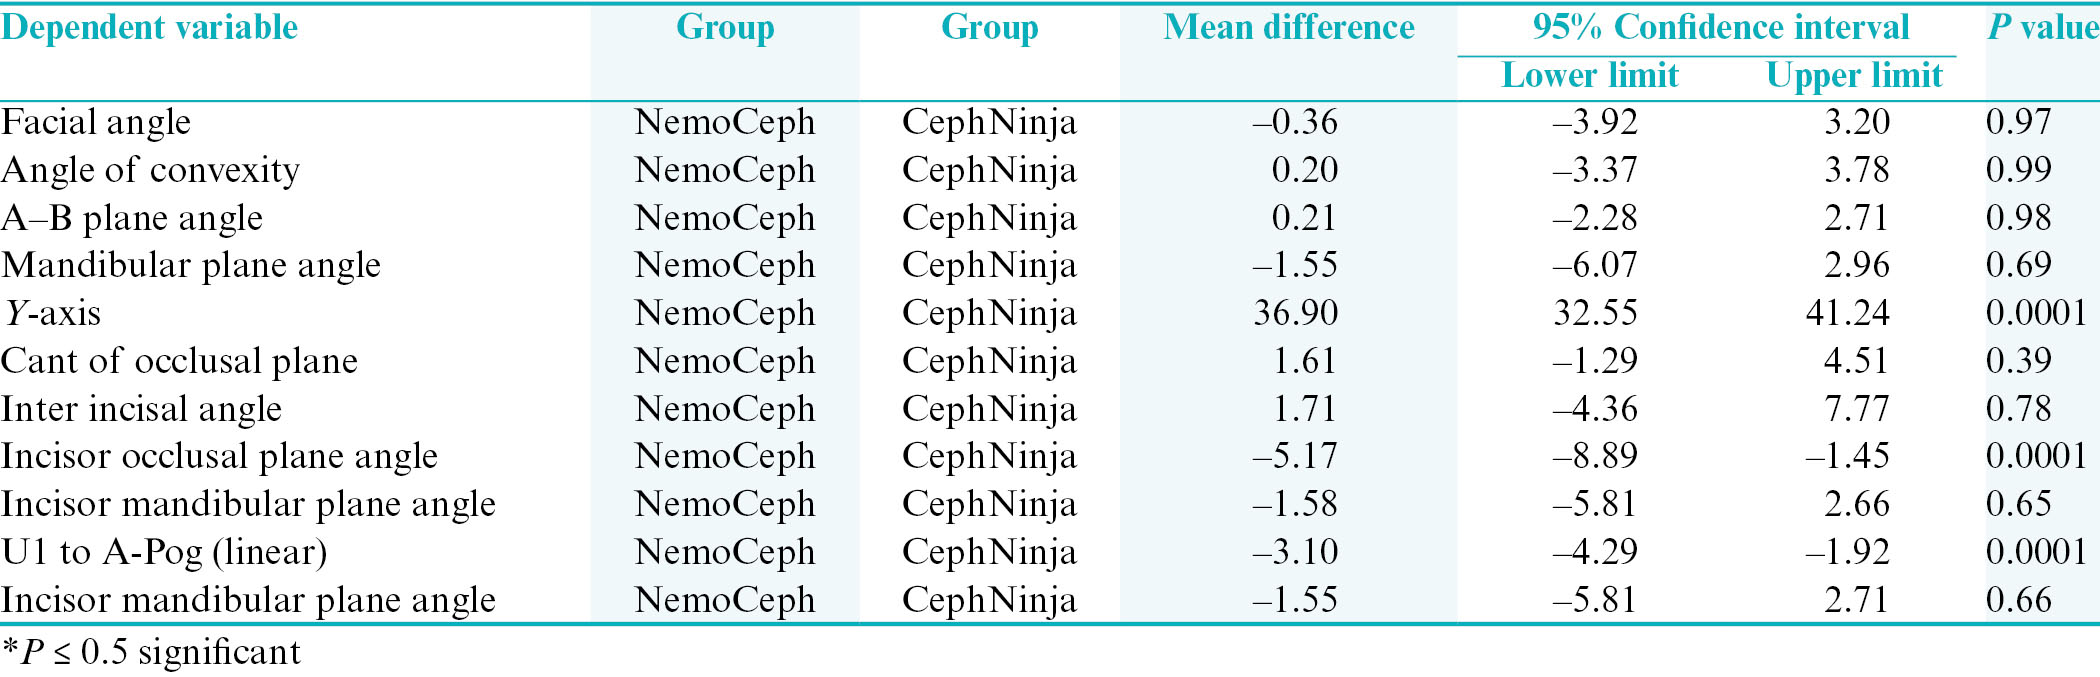 Table 3: Comparison of Downs's analysis values between groups (<i>post hoc</i> test)